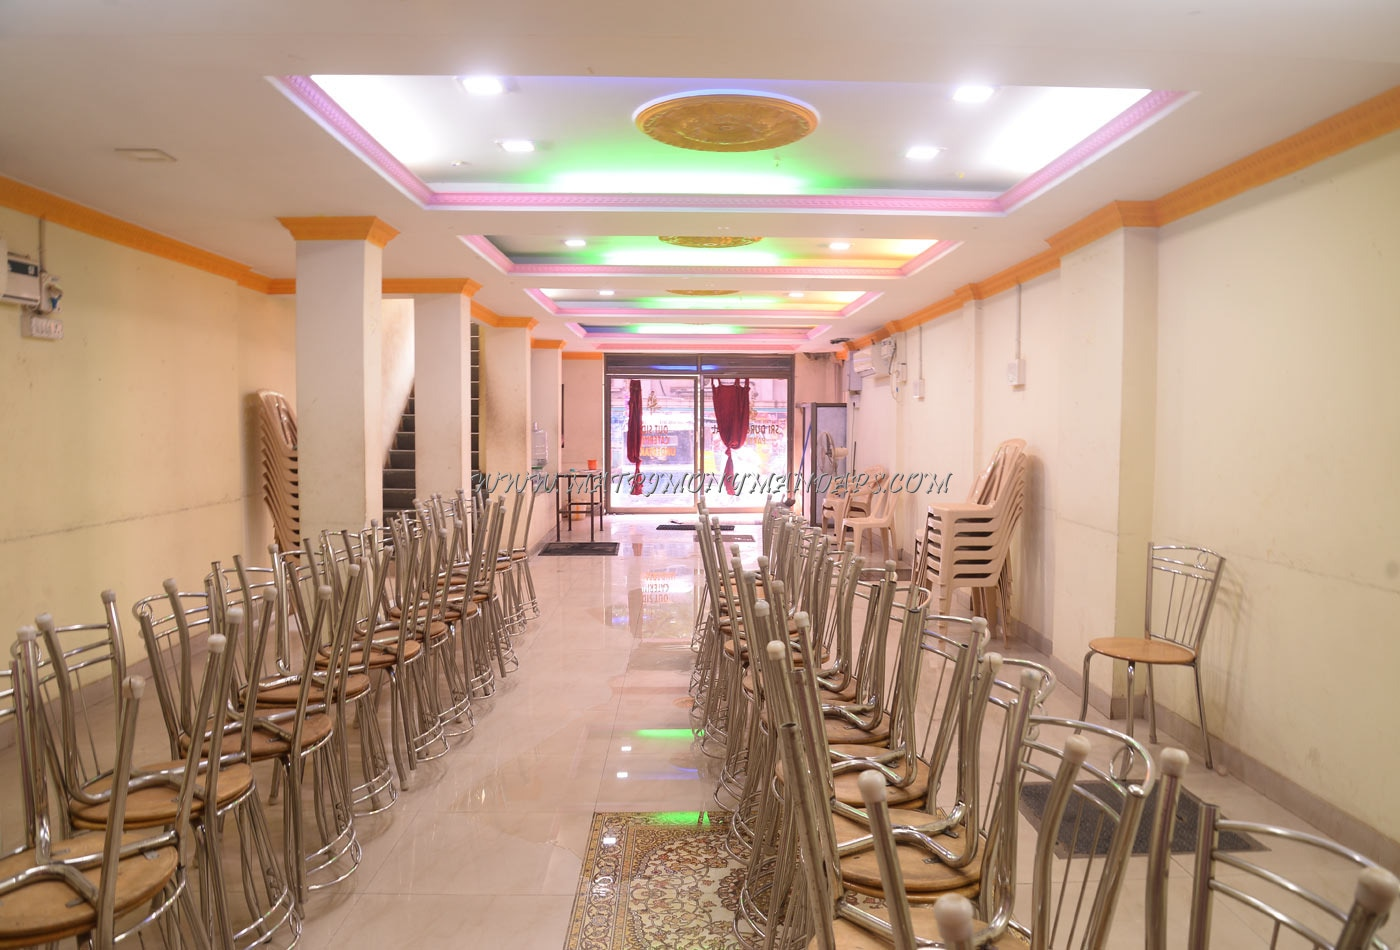 Find the availability of the Sri Durga Mahal (A/C) in Korattur, Chennai and avail special offers